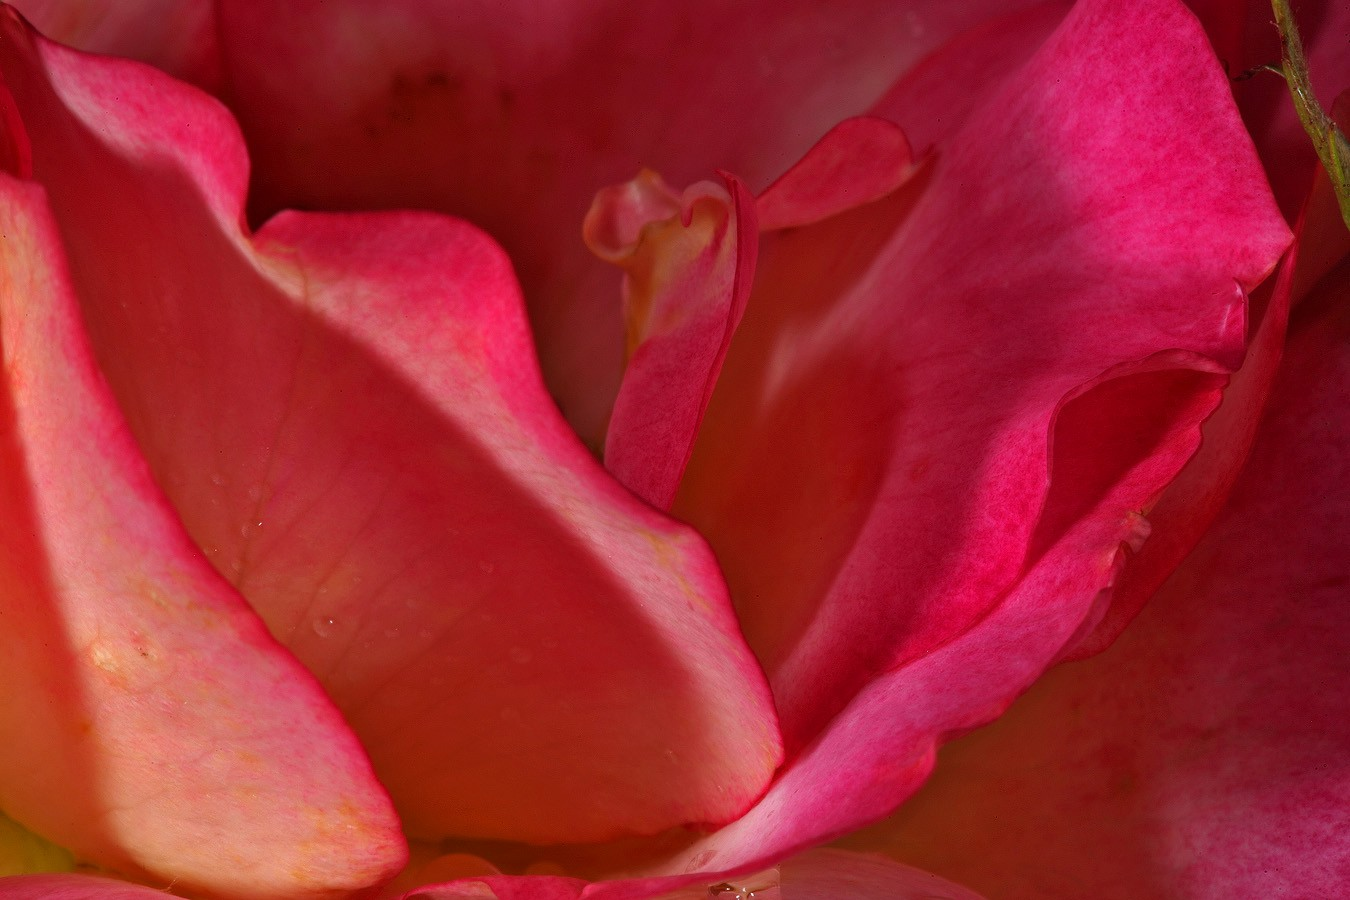 rainbow rose b img aw author sava gregory and ver verena